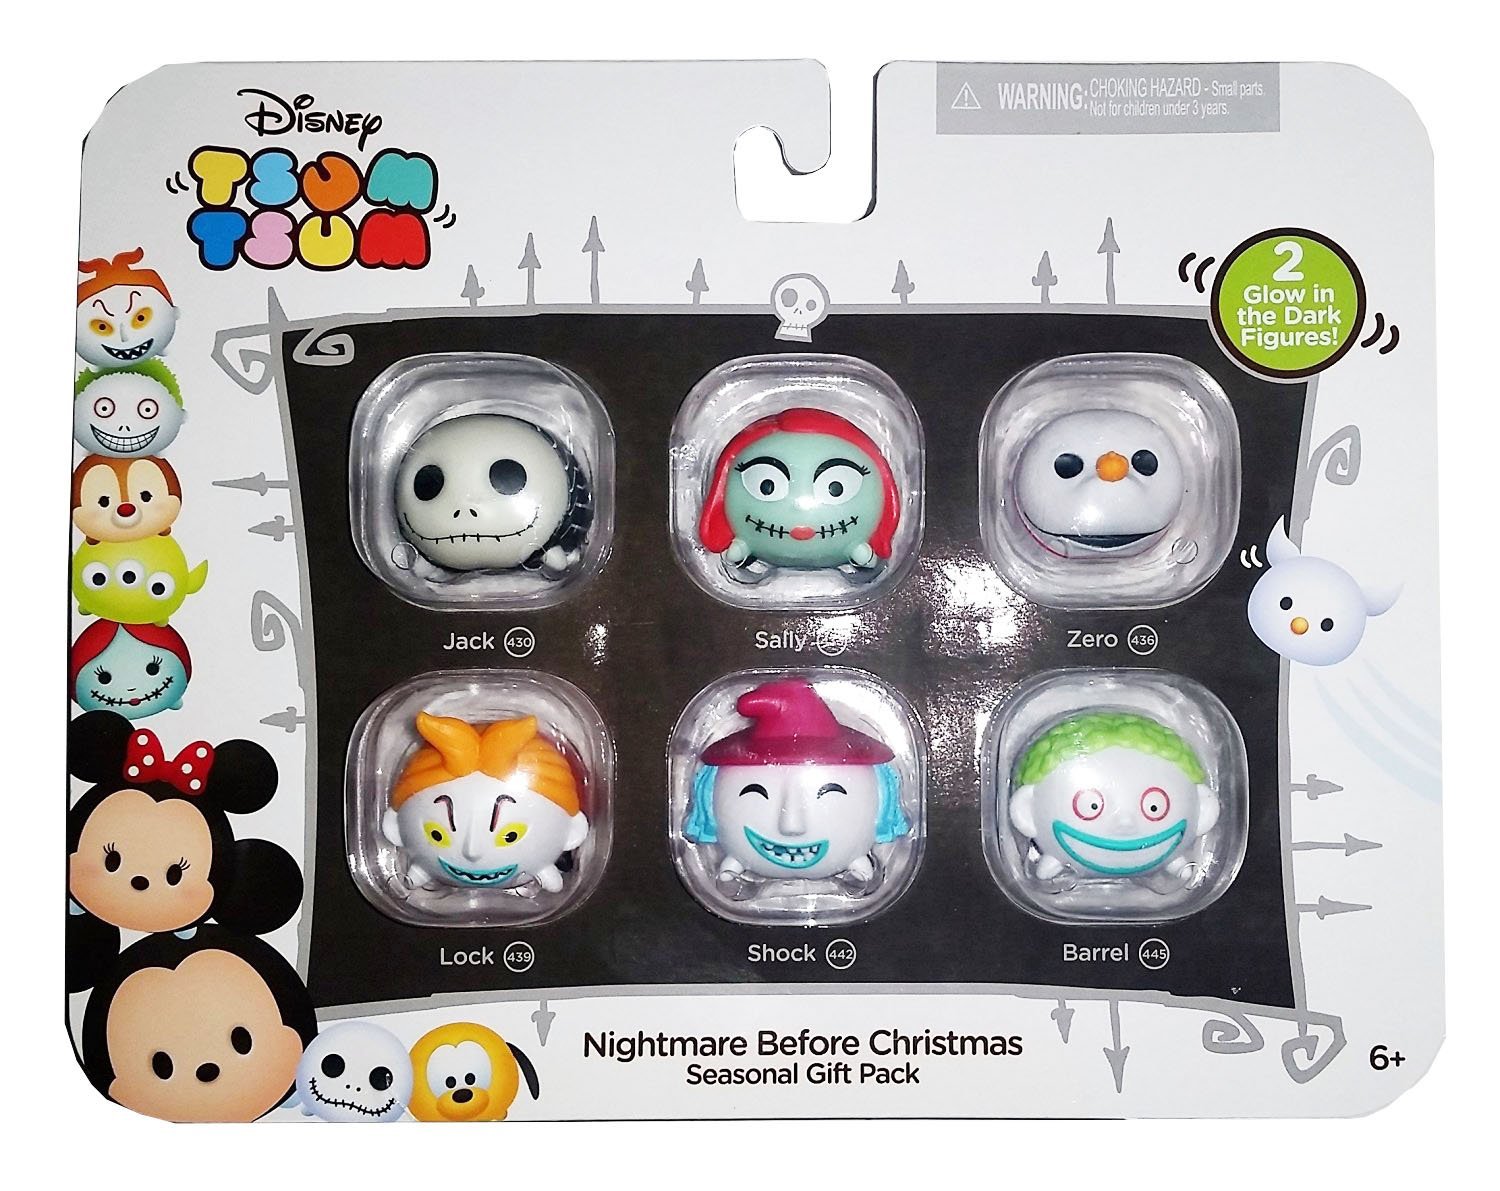 Amazon.com: Disney Tsum Tsum Nightmare Before Christmas Seasonal ...